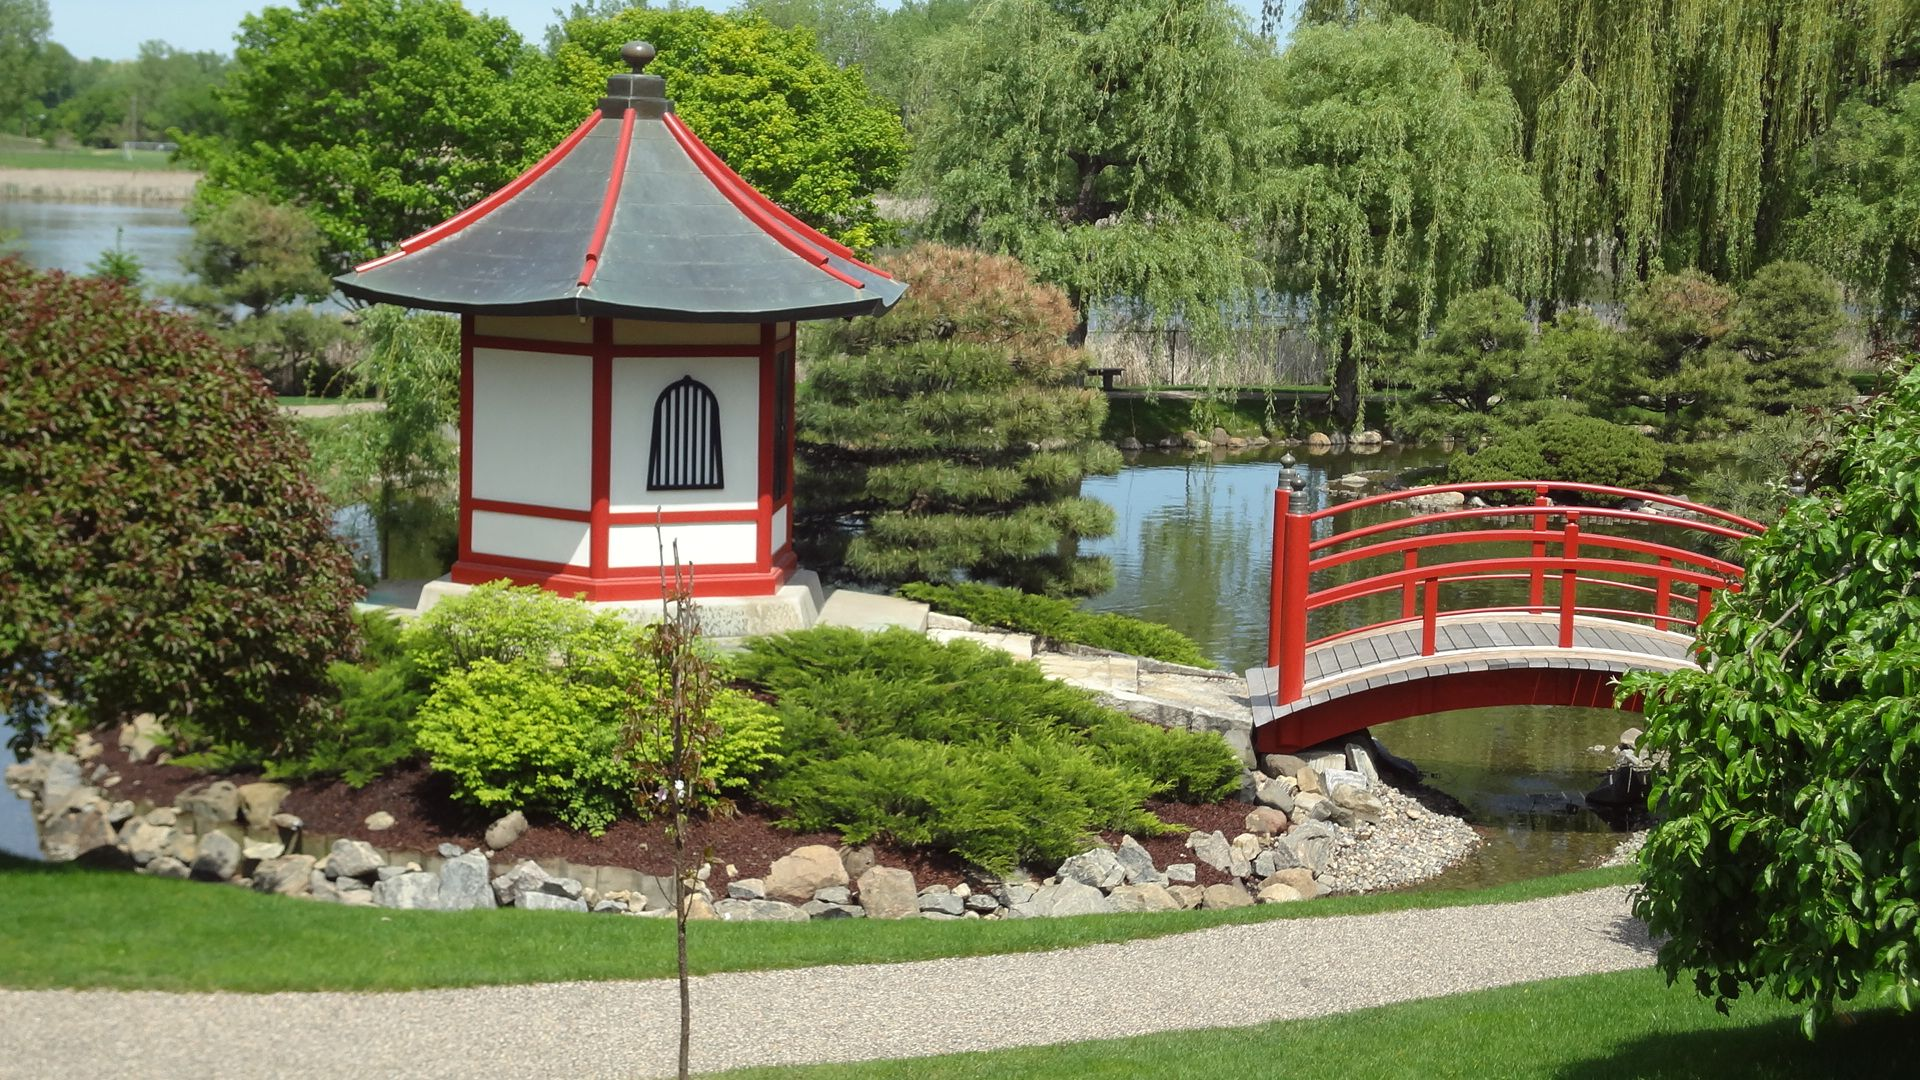 Japanese Garden And Bridge At Normandale College In Bloomington, MN